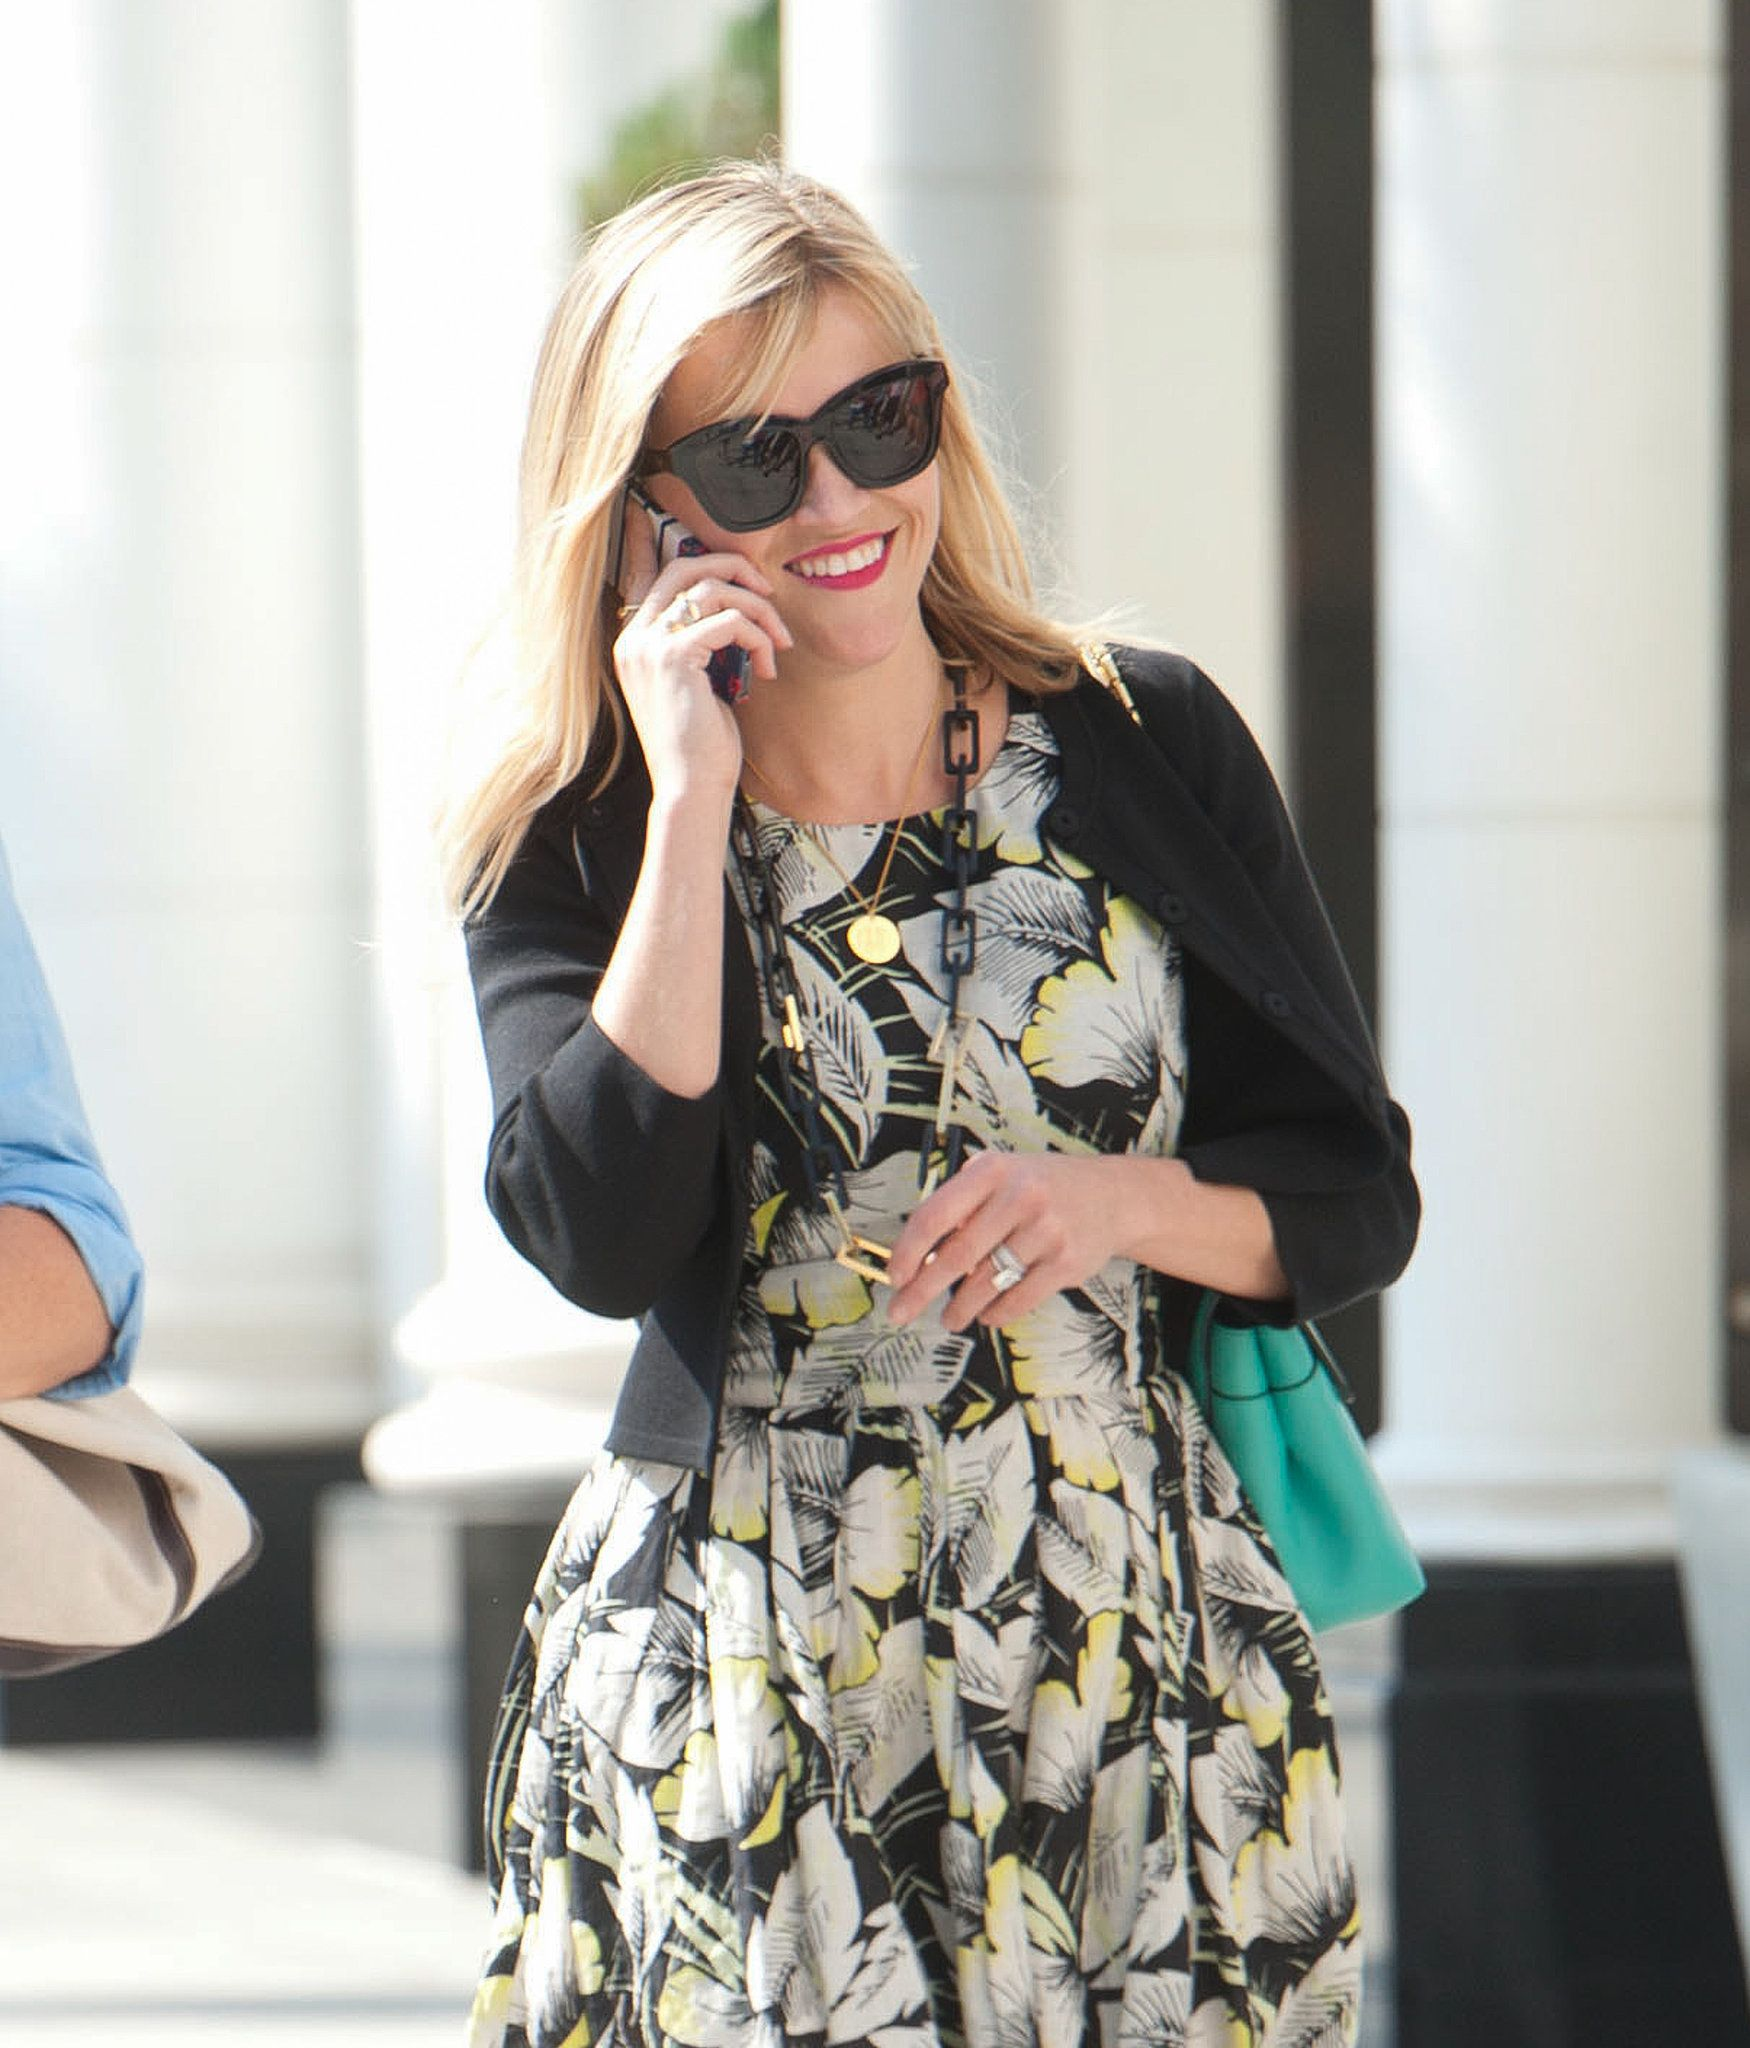 Some days, all a gal needs (Reese Witherspoon included) is a big pair of sunglasses and a bright lipstick.